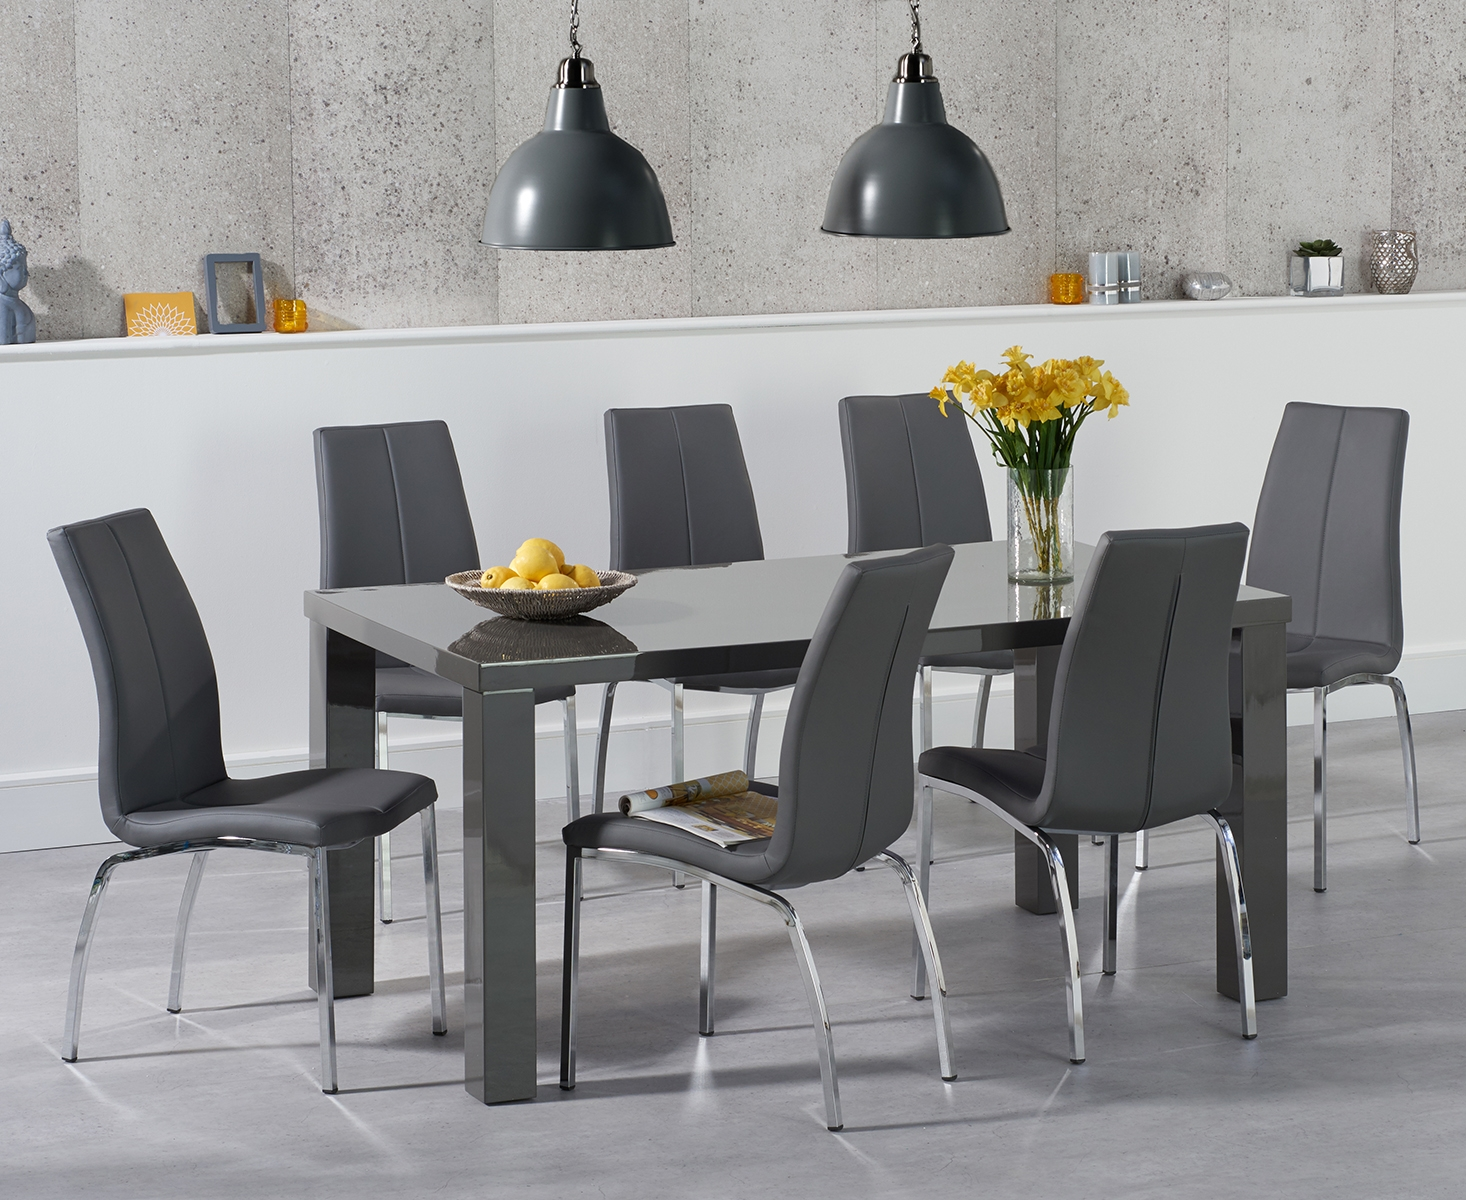 An image of Atlanta 160cm Dark Grey High Gloss Dining Table with Cavello Chairs